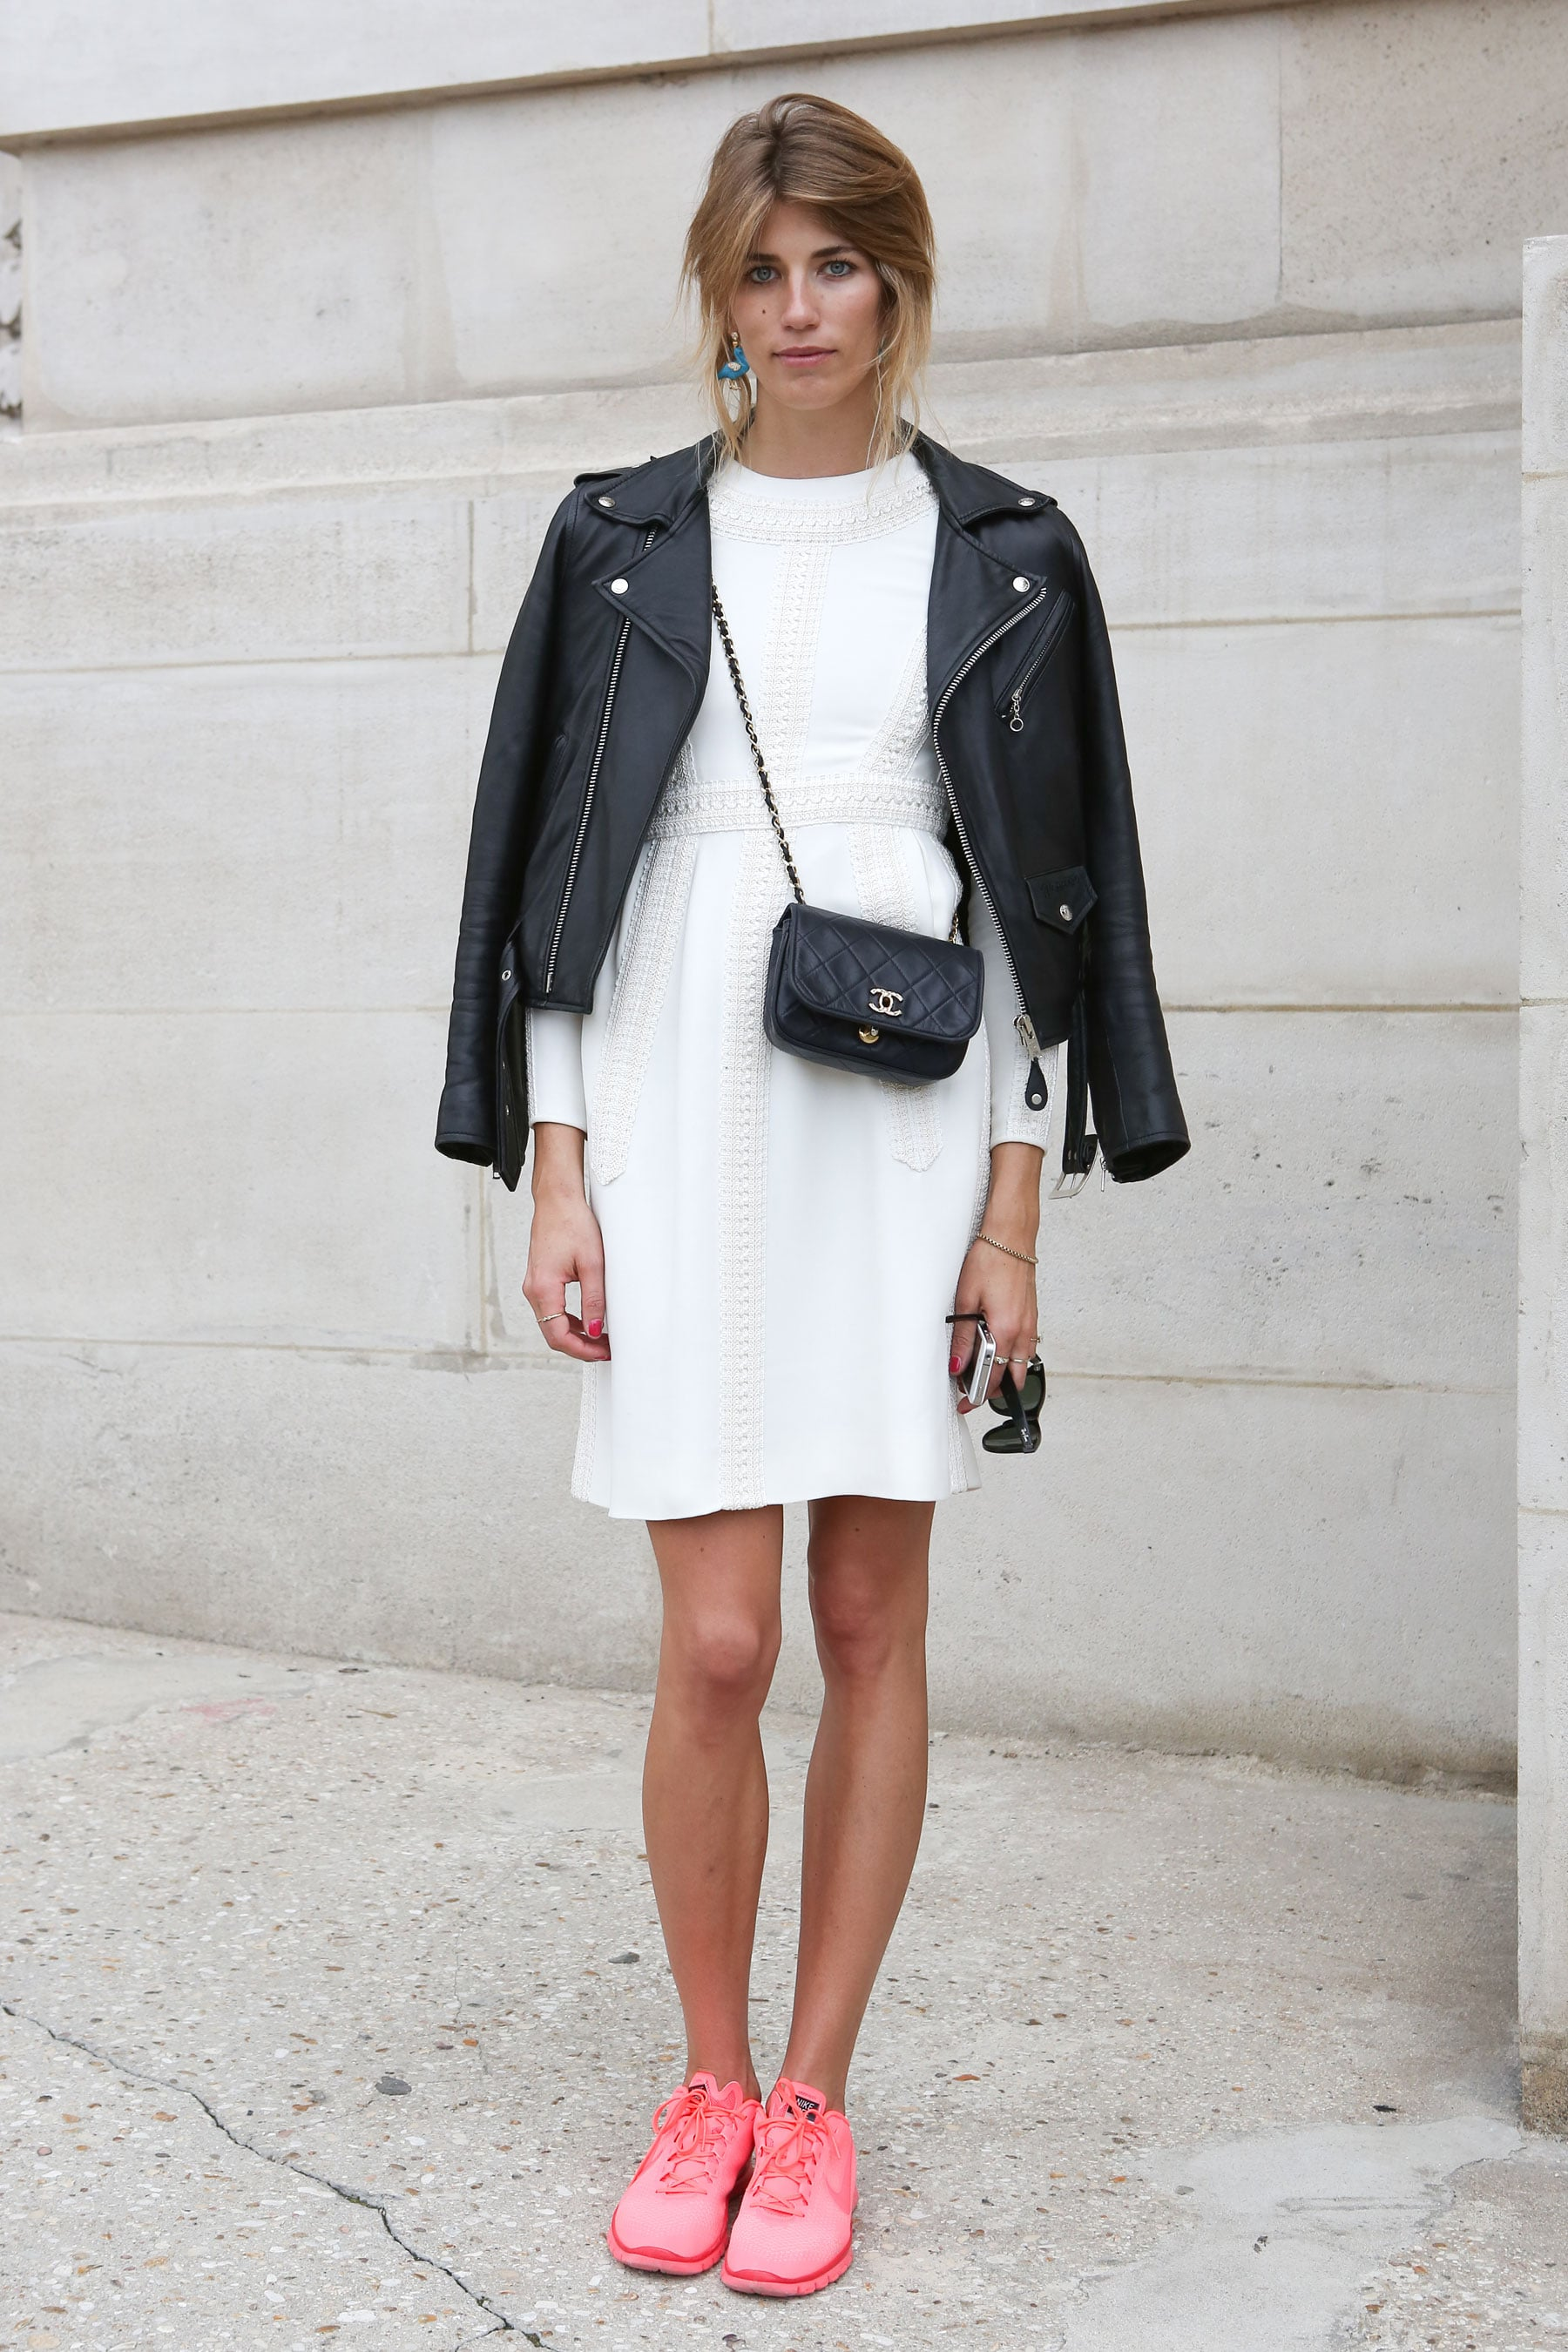 If you ever thought you couldn't wear your Nikes with your day dresses without looking like a shot out of Working Girl, this look will prove you wrong. Her white dress and stylish leather jacket are the perfect foil for fresh athletic kicks.